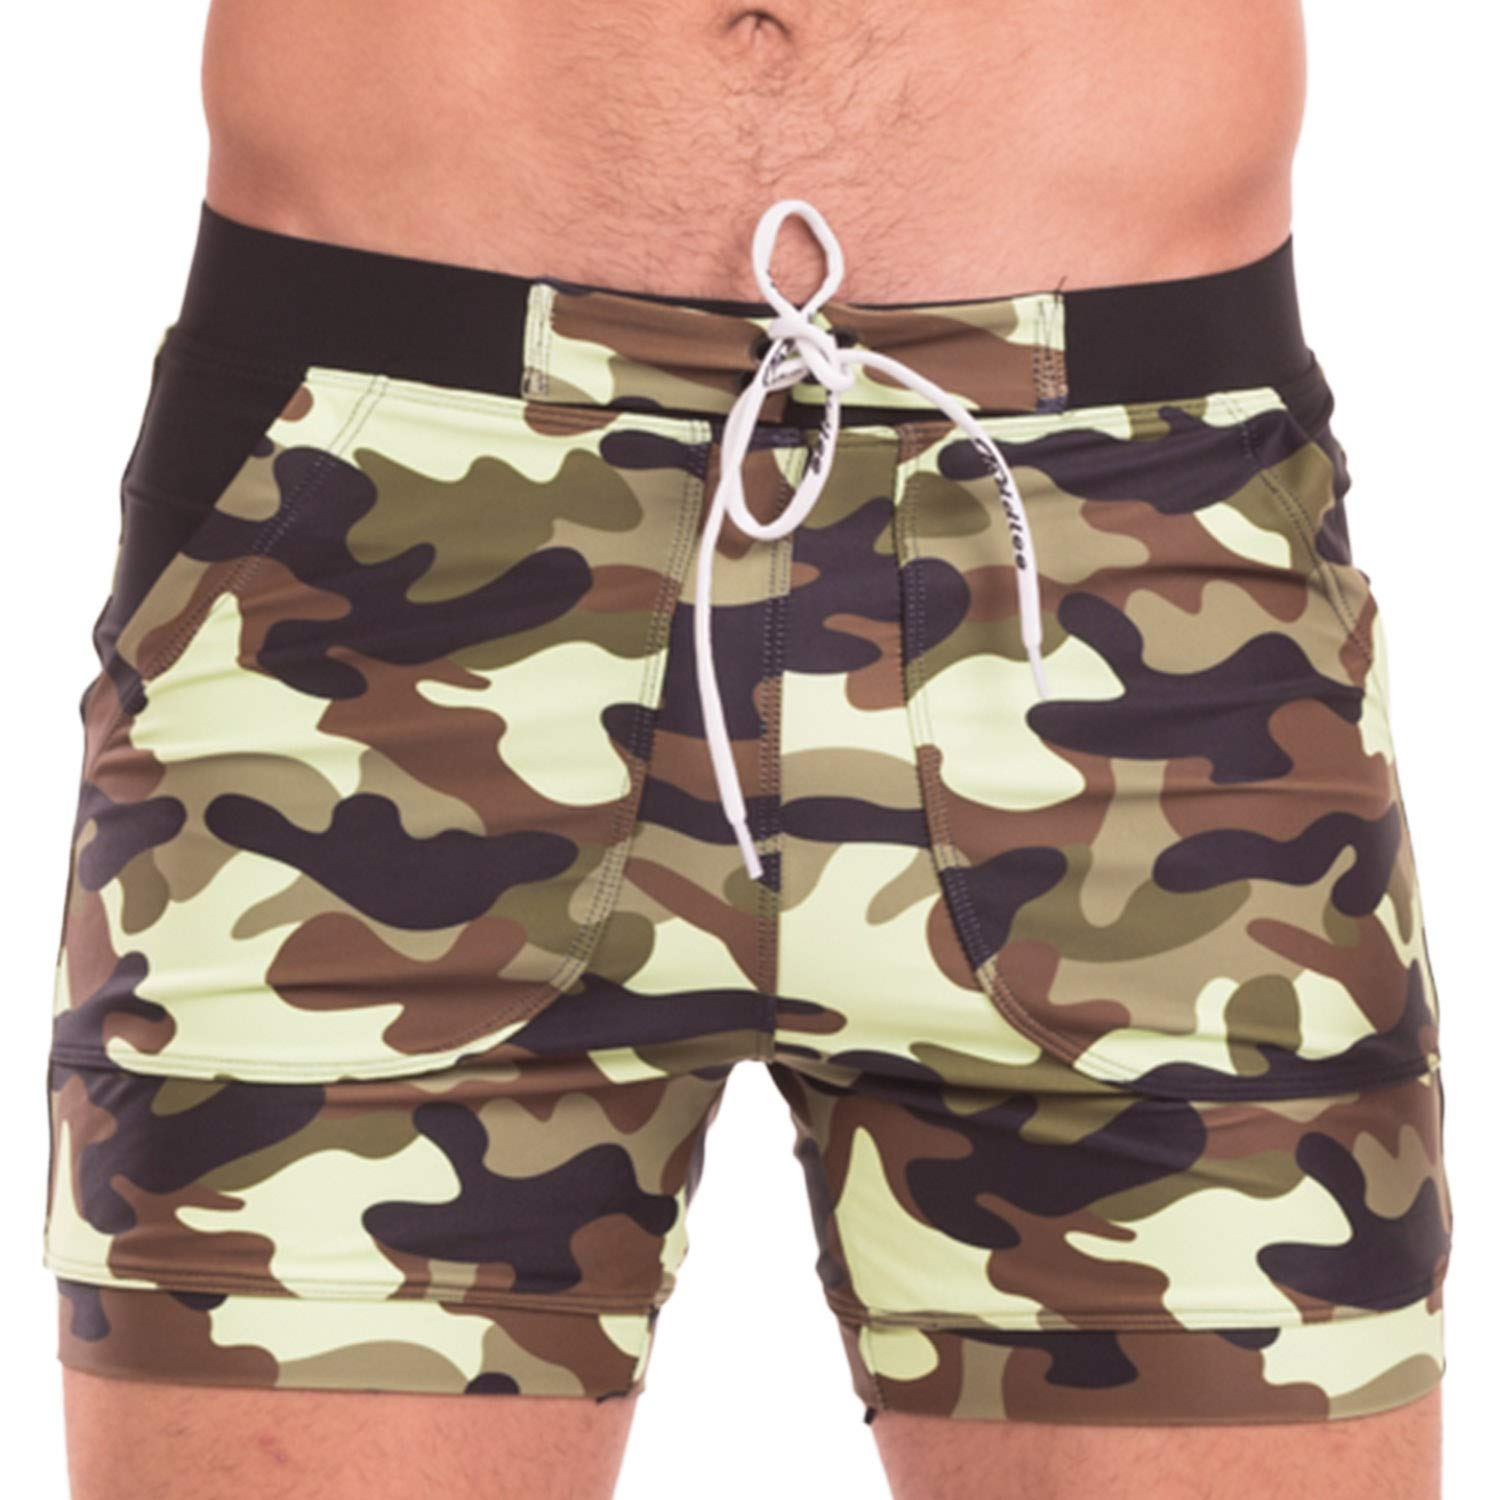 dbbb30f0c520e Taddlee Swimwear Men Basic Long Swimming Trunk Surf Camo Shorts Swimsuits  Pocket (M,Green)